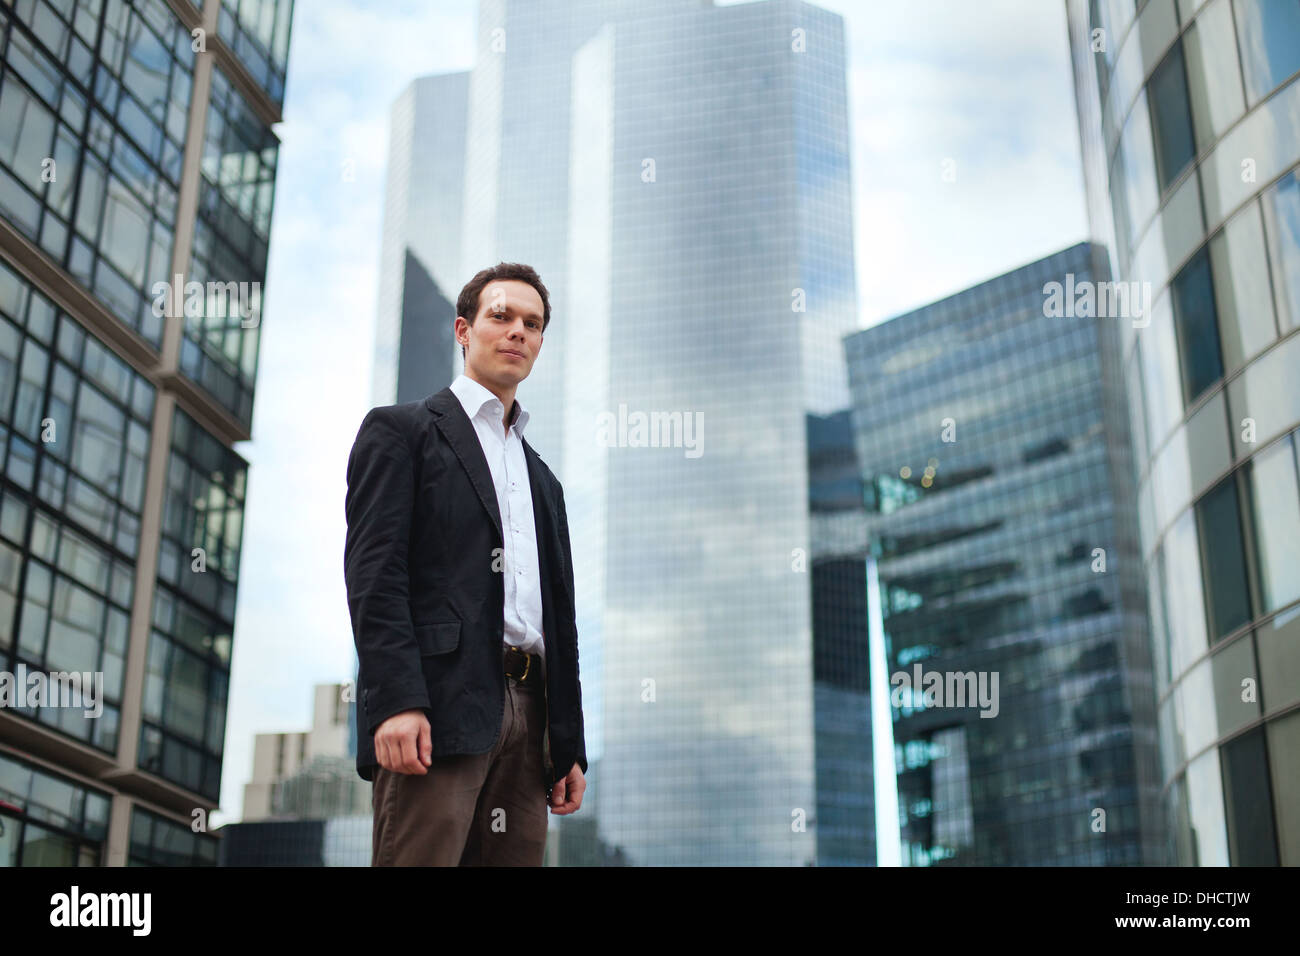 young business man on the office buildings background - Stock Image